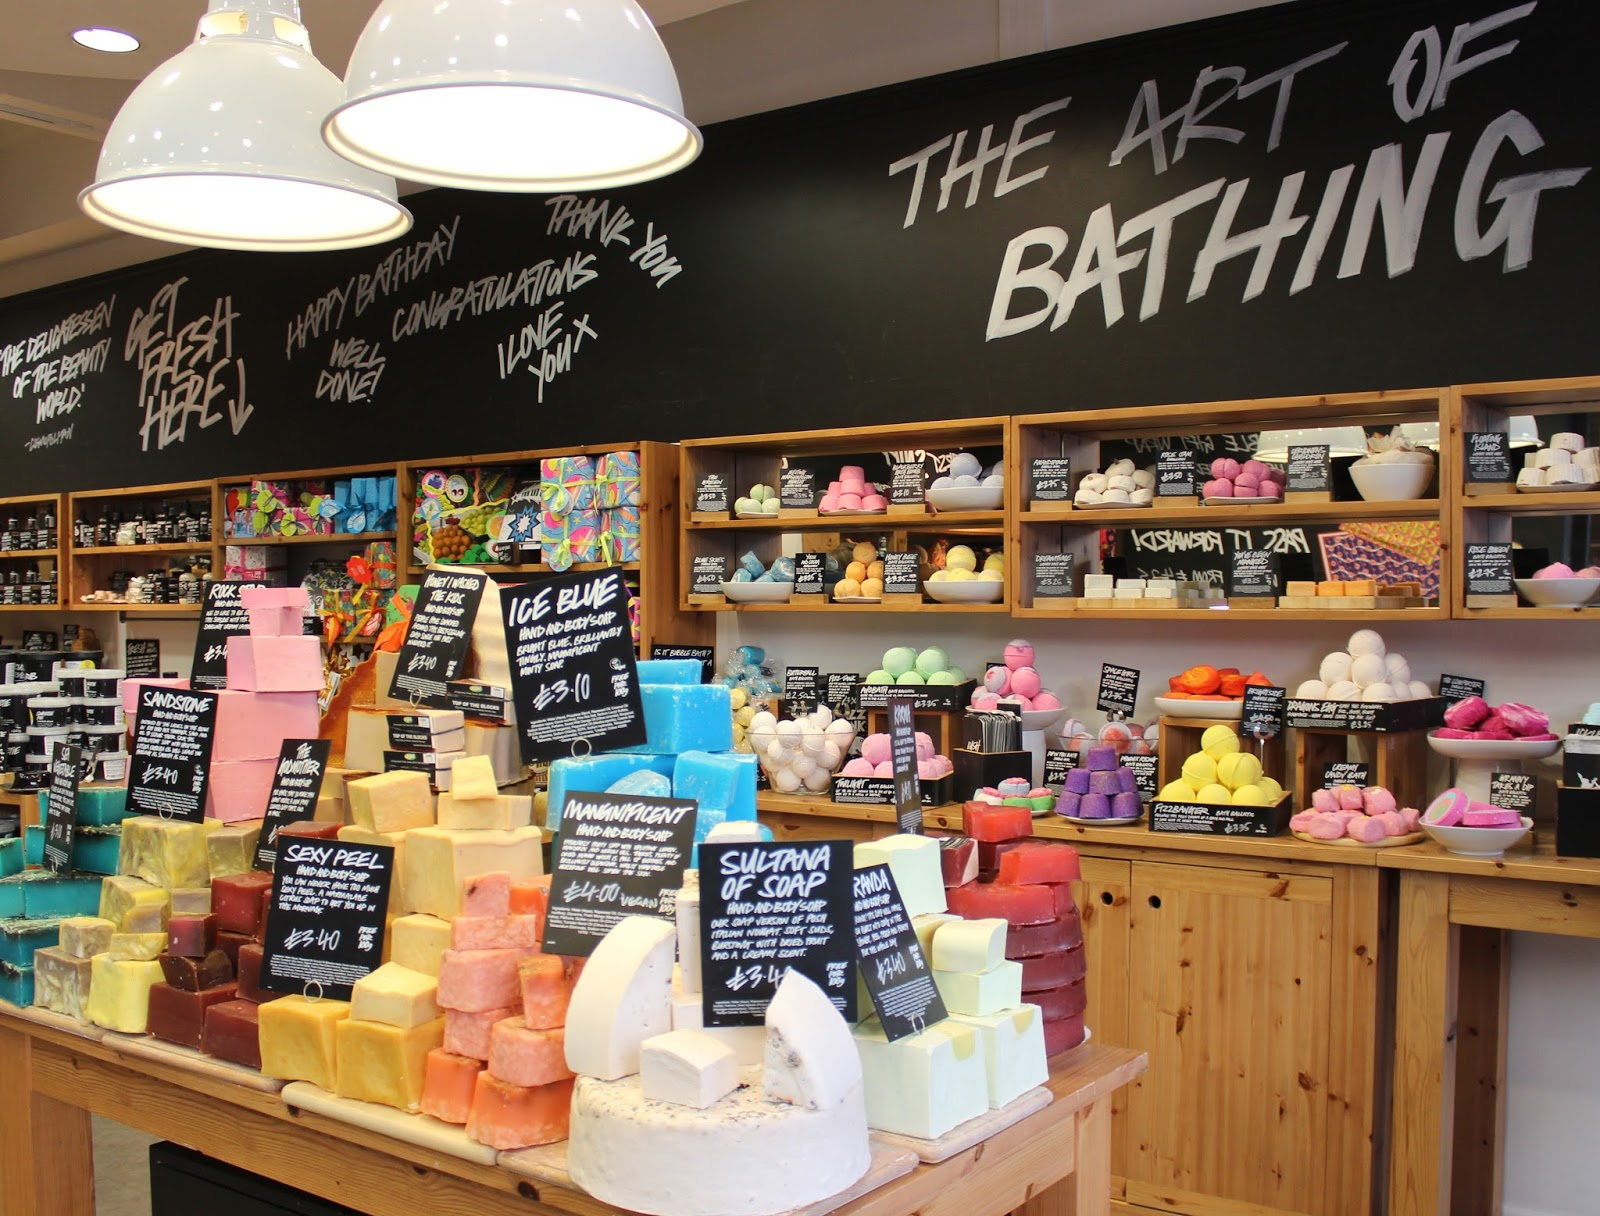 The colourful selection of LUSH products